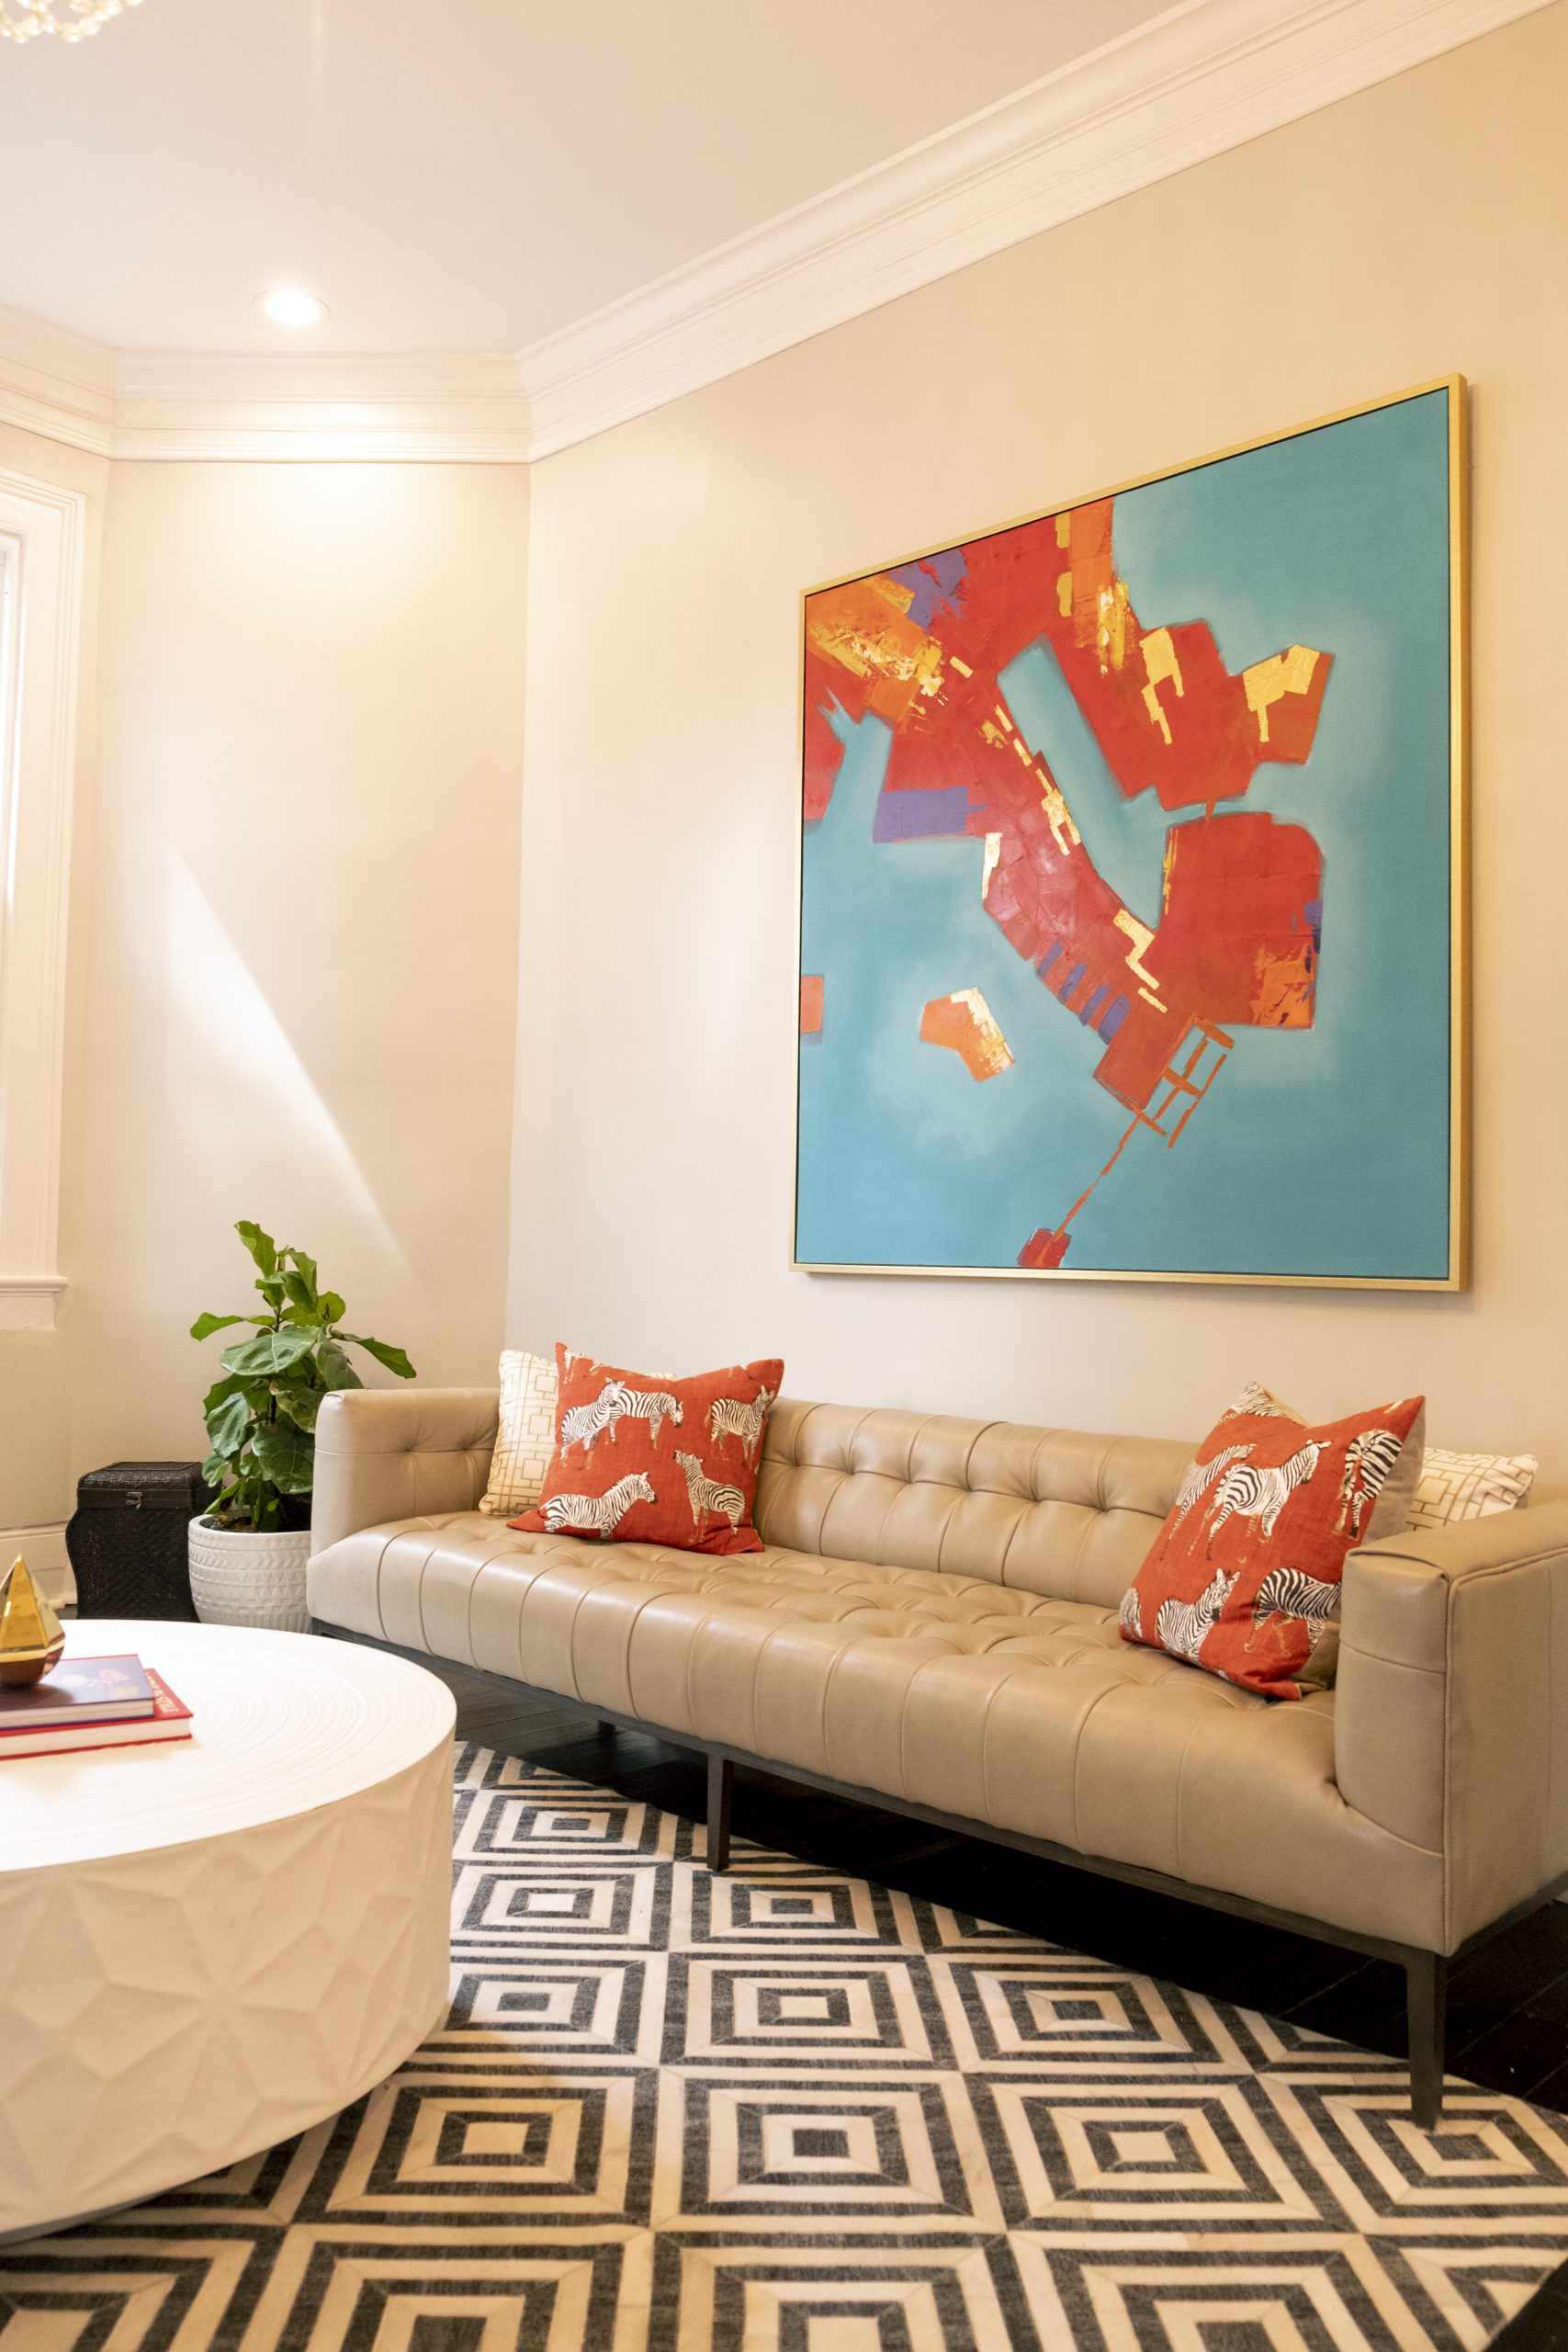 new orleans, staging, stager, bespoke staging and design, bespoke nola staging and design, home stager, home staging, real estate staging, real estate stager, property staging